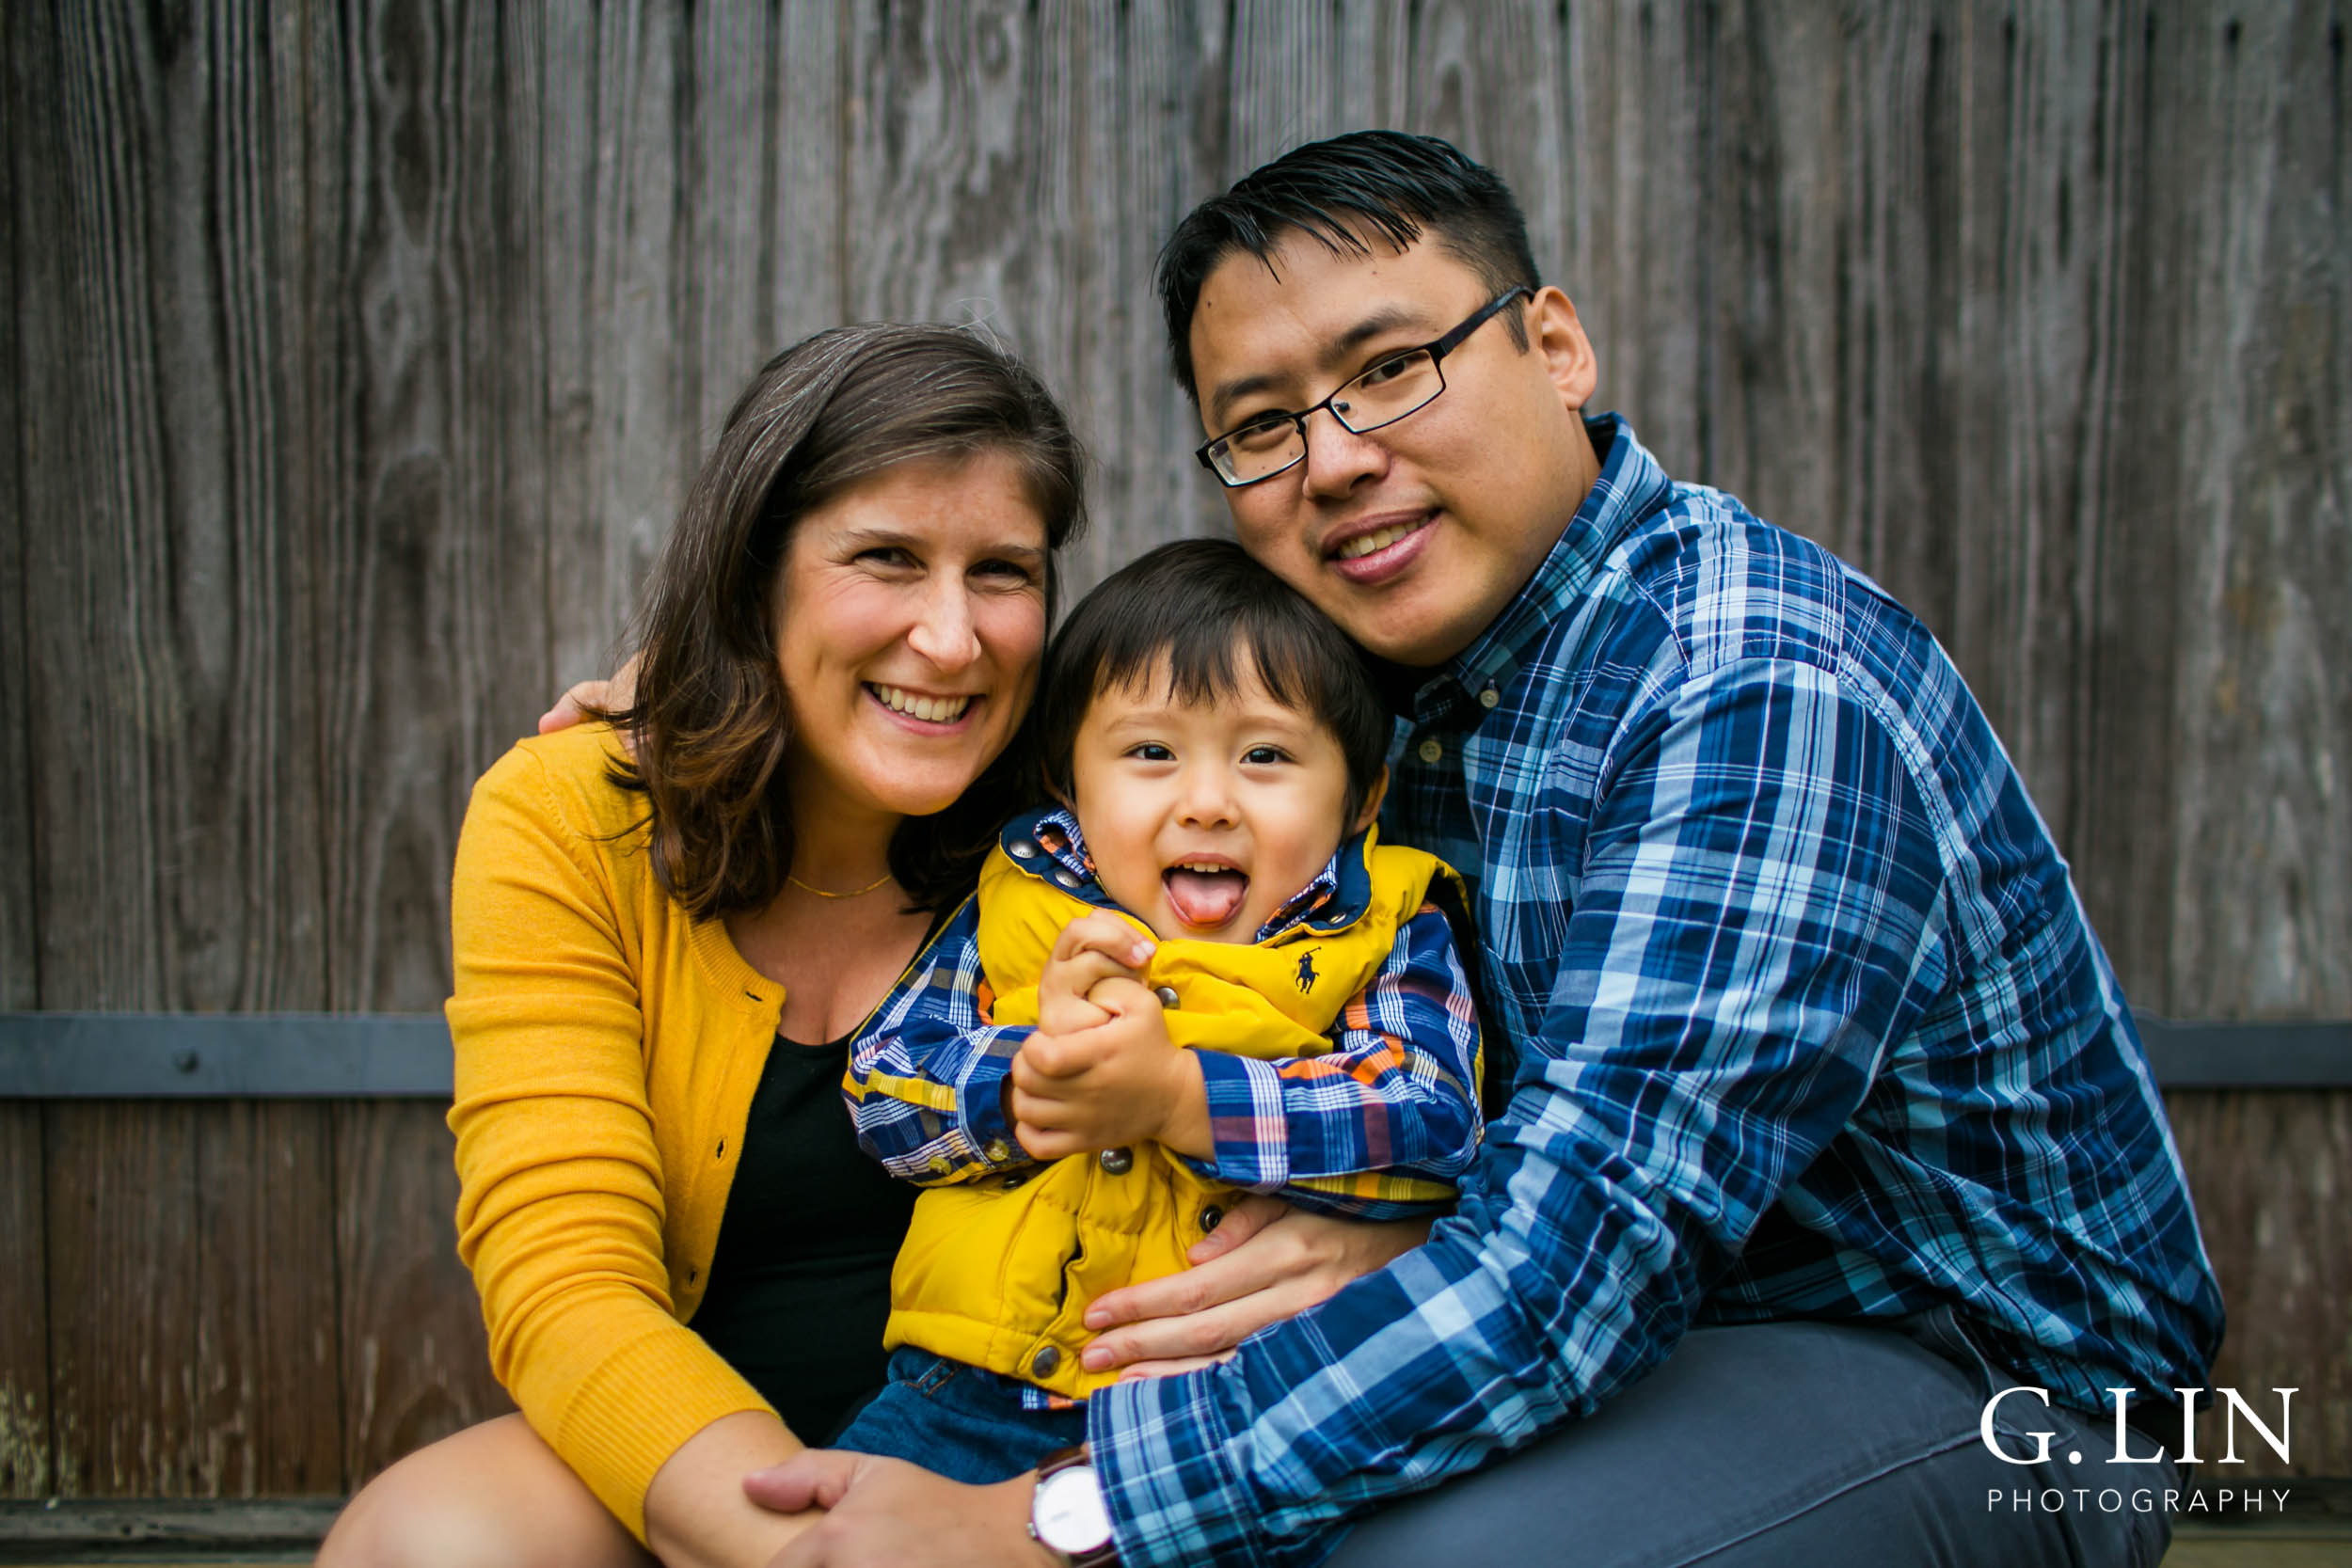 Durham Family Photography | G. Lin Photography | Family of three taking a candid photo